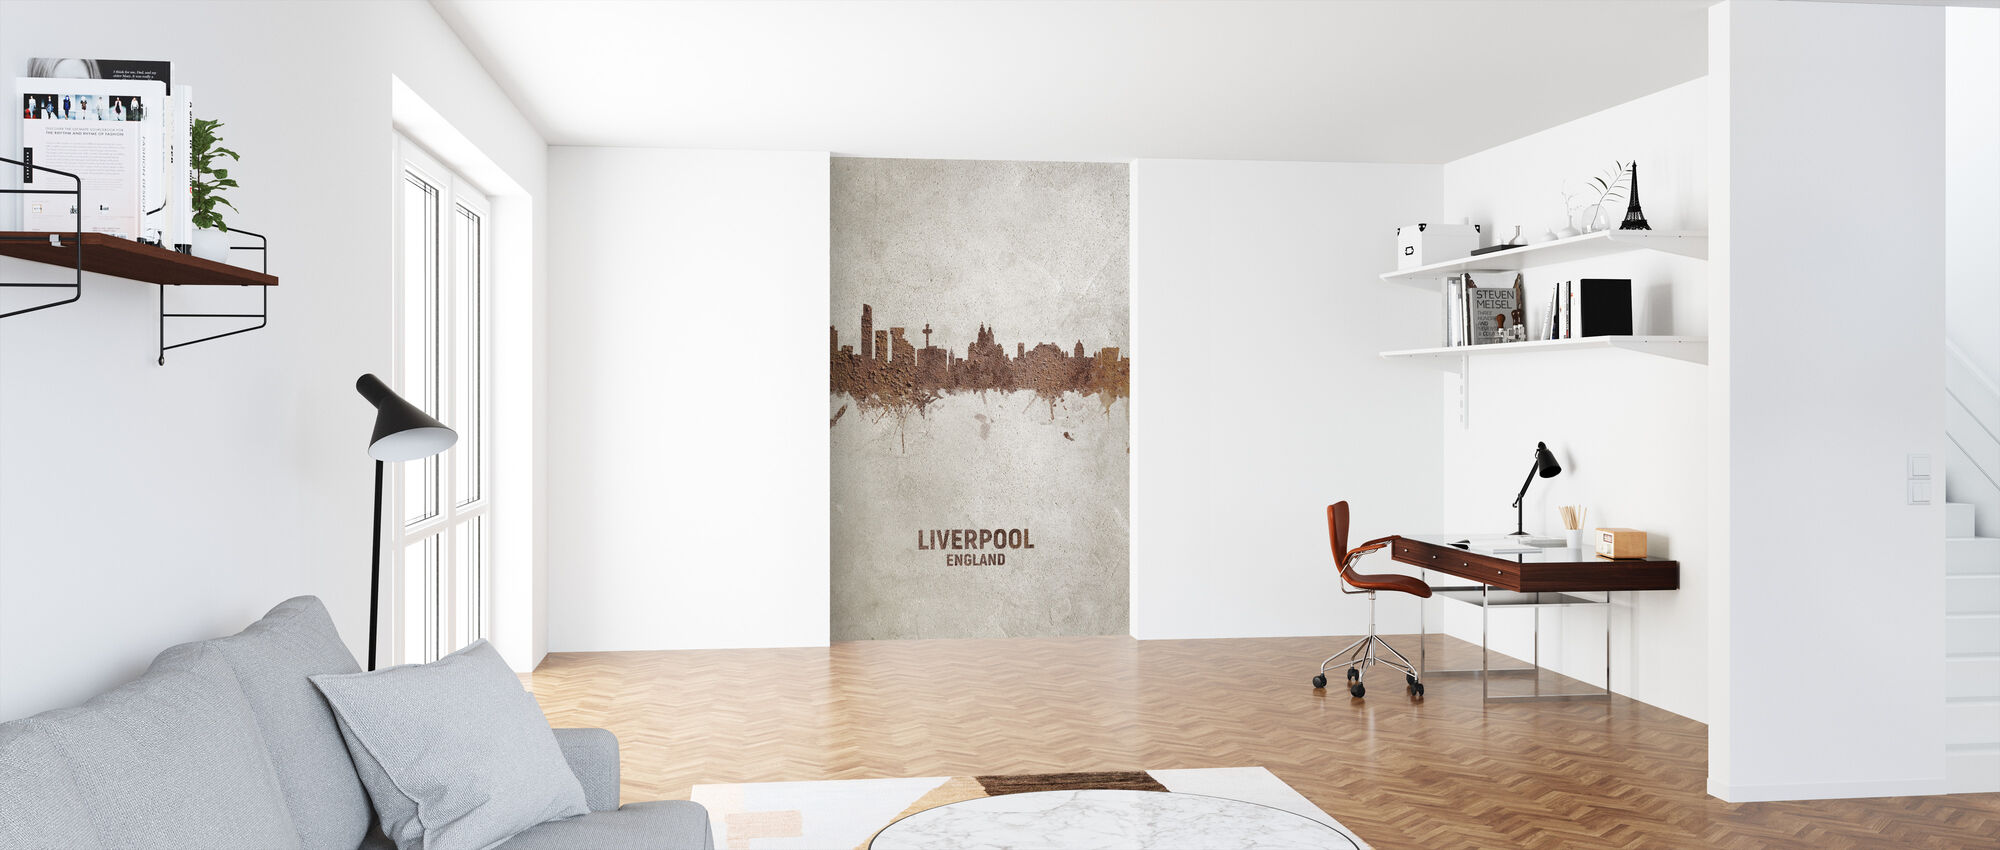 Liverpool England Rust Skyline - Wallpaper - Office